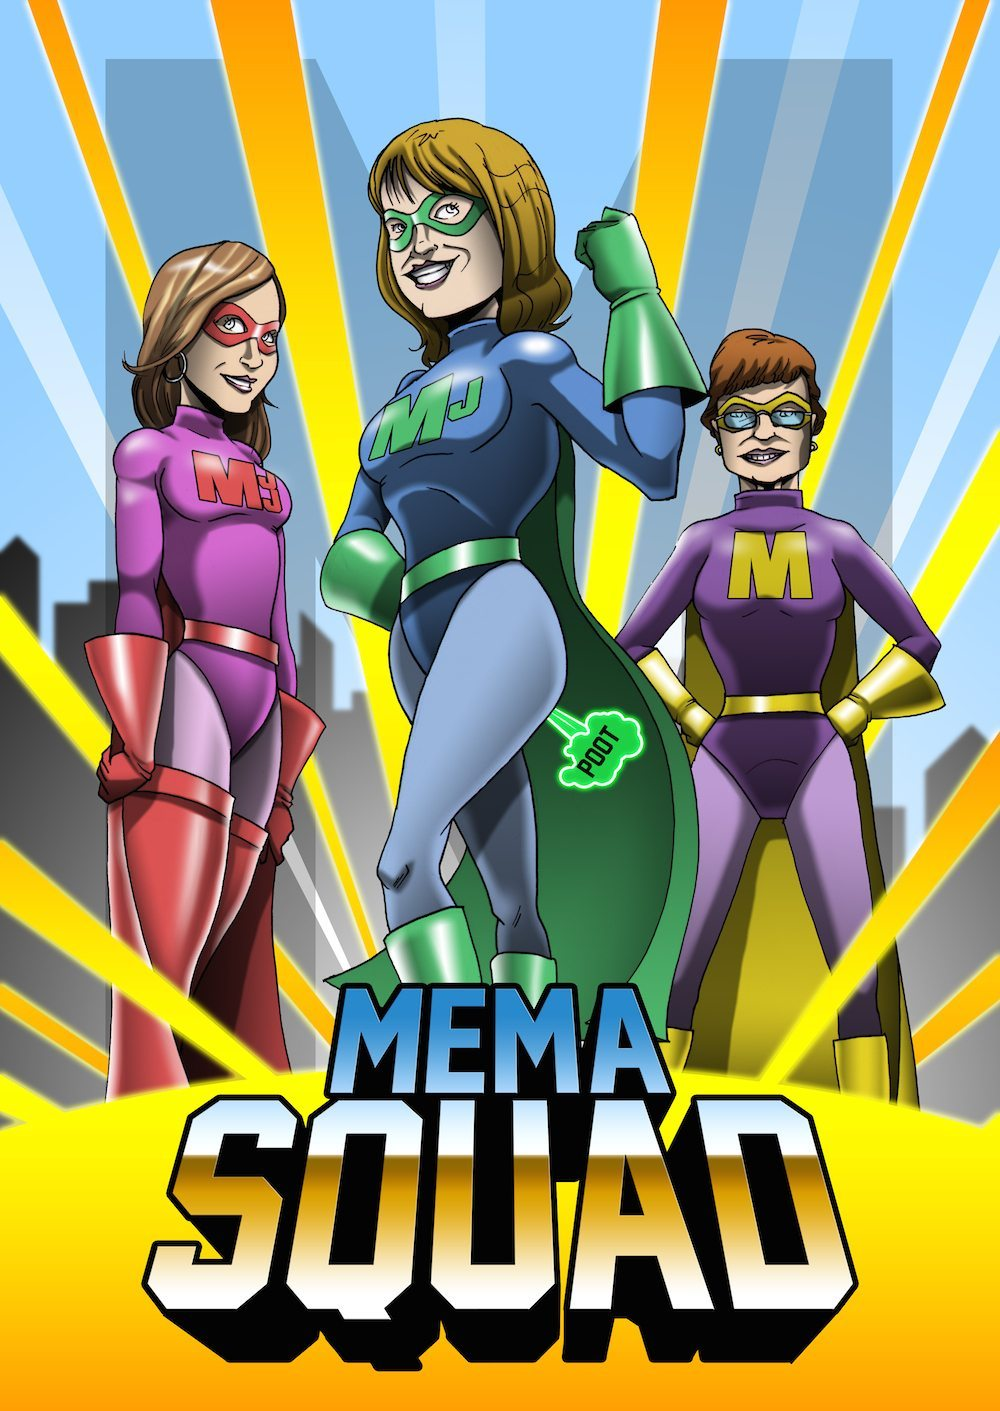 Mema Squad by Clay Graham via ArtCorgi with Logo